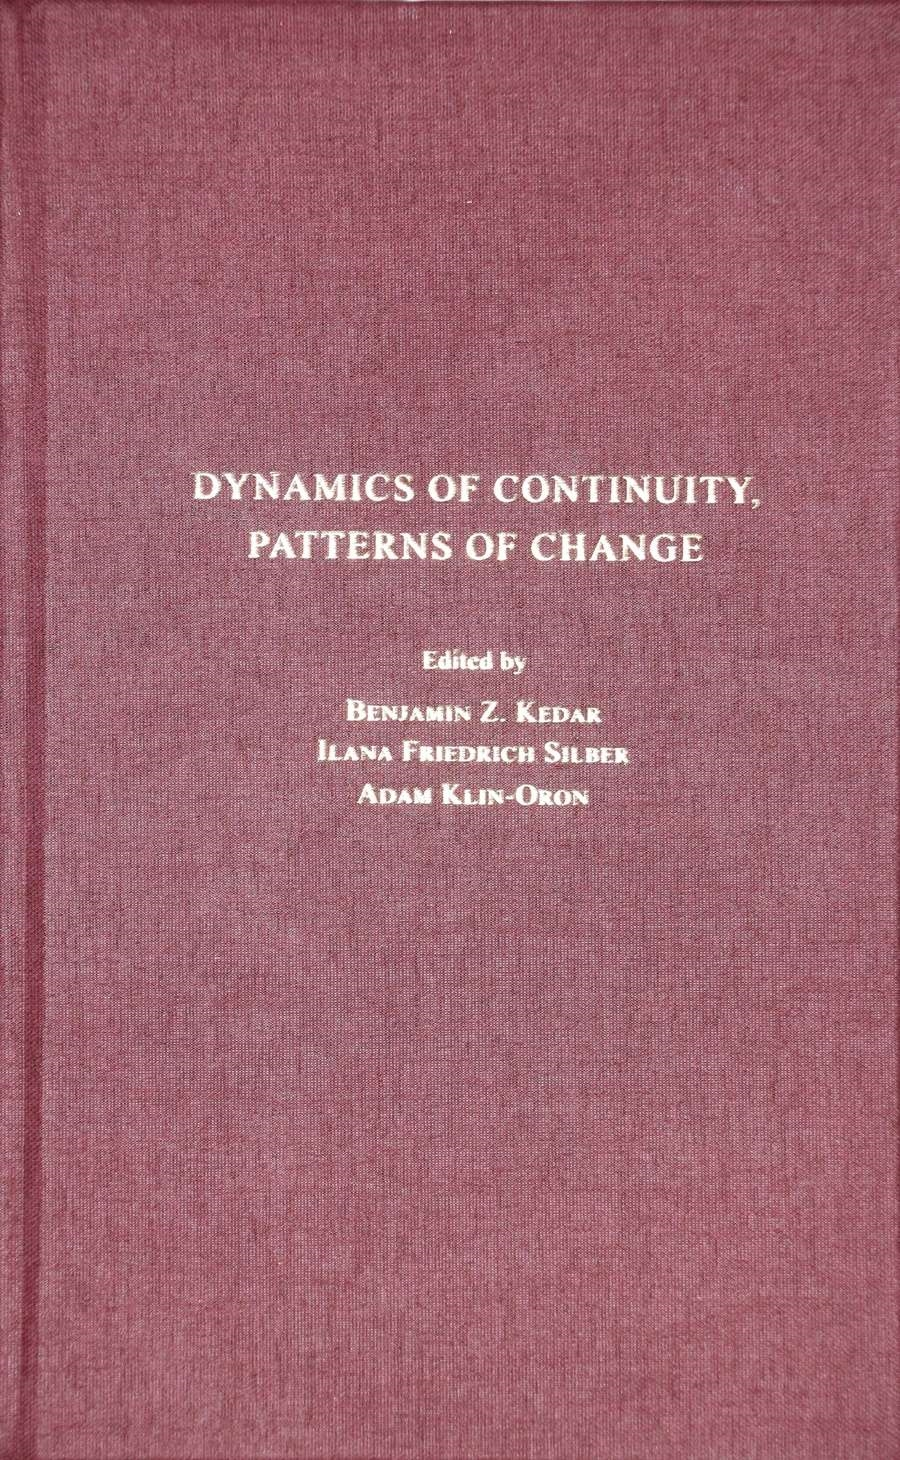 Dynamics of Continuity, Patterns of Change